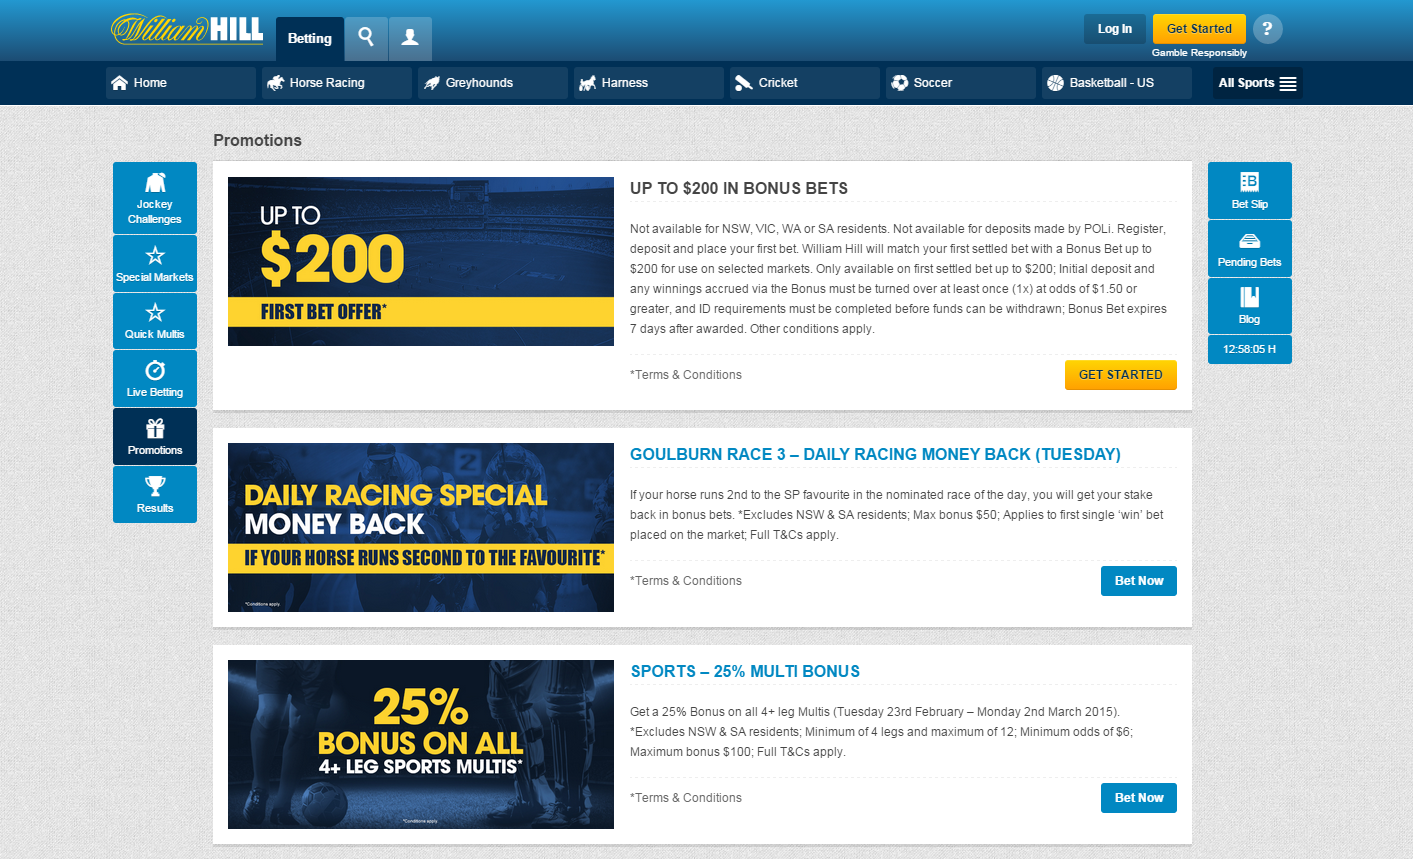 William Hill betting promotions